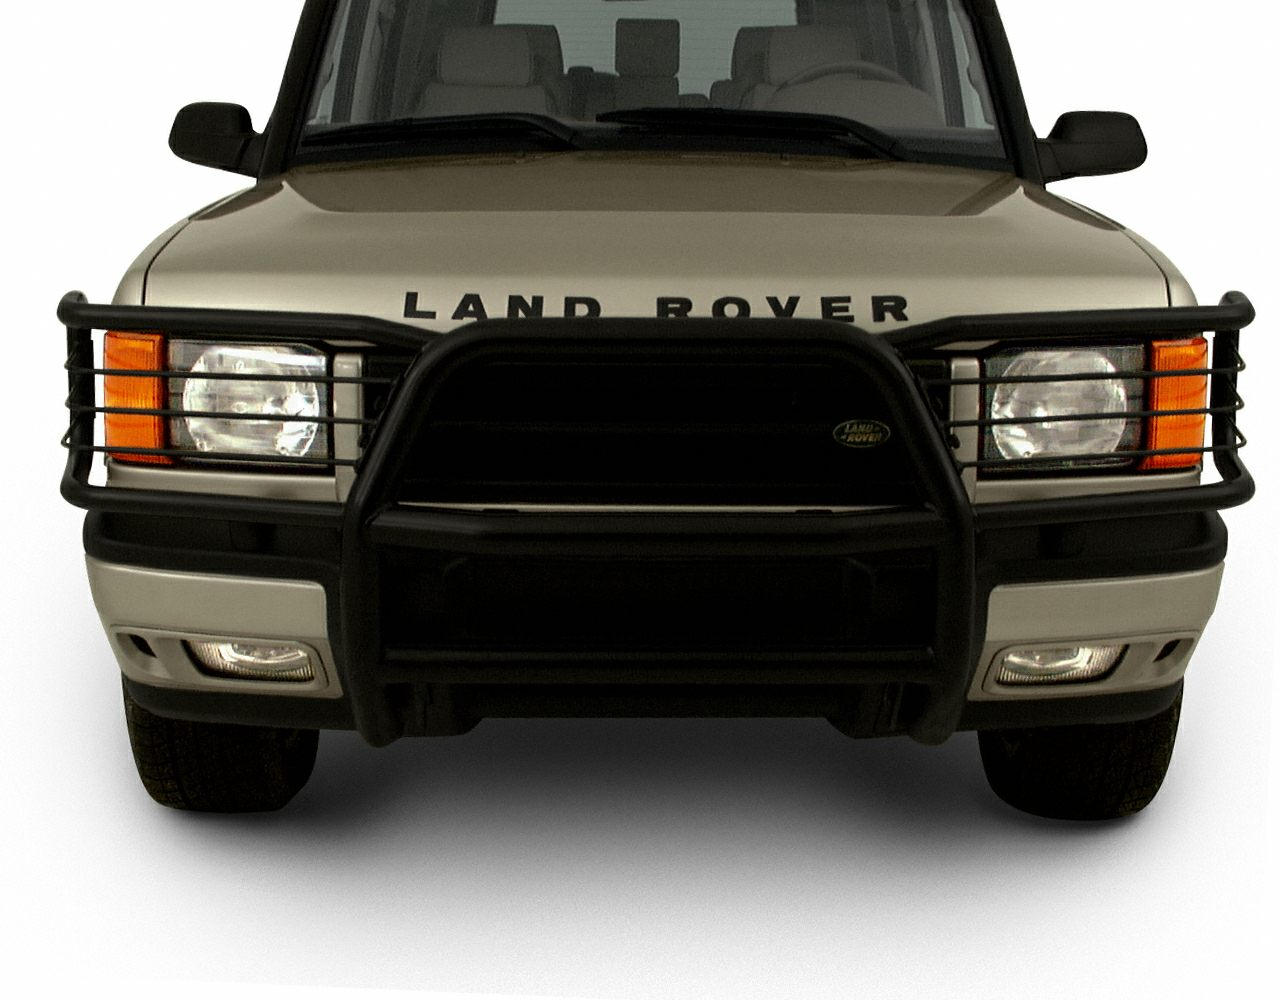 2000 Land Rover Discovery Pictures